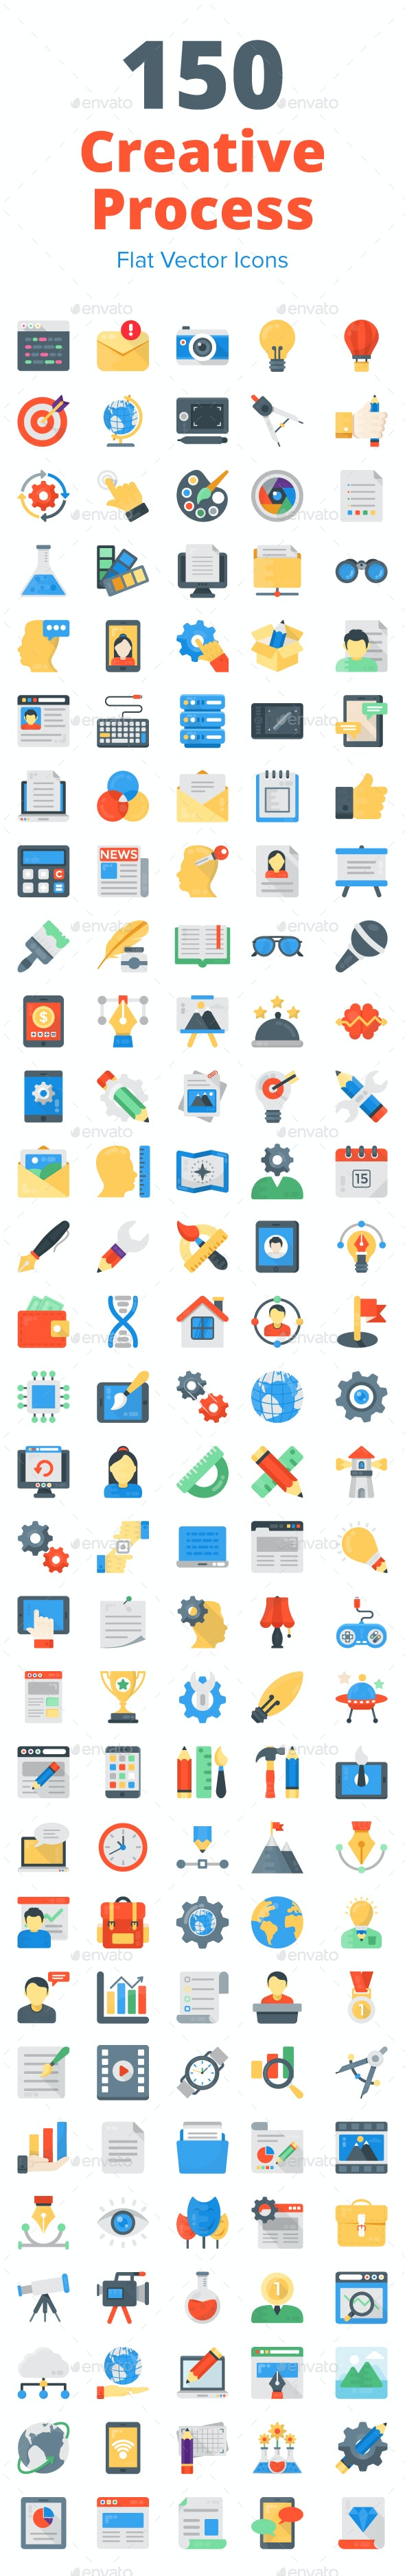 150 Creative Process Flat Icons - Icons